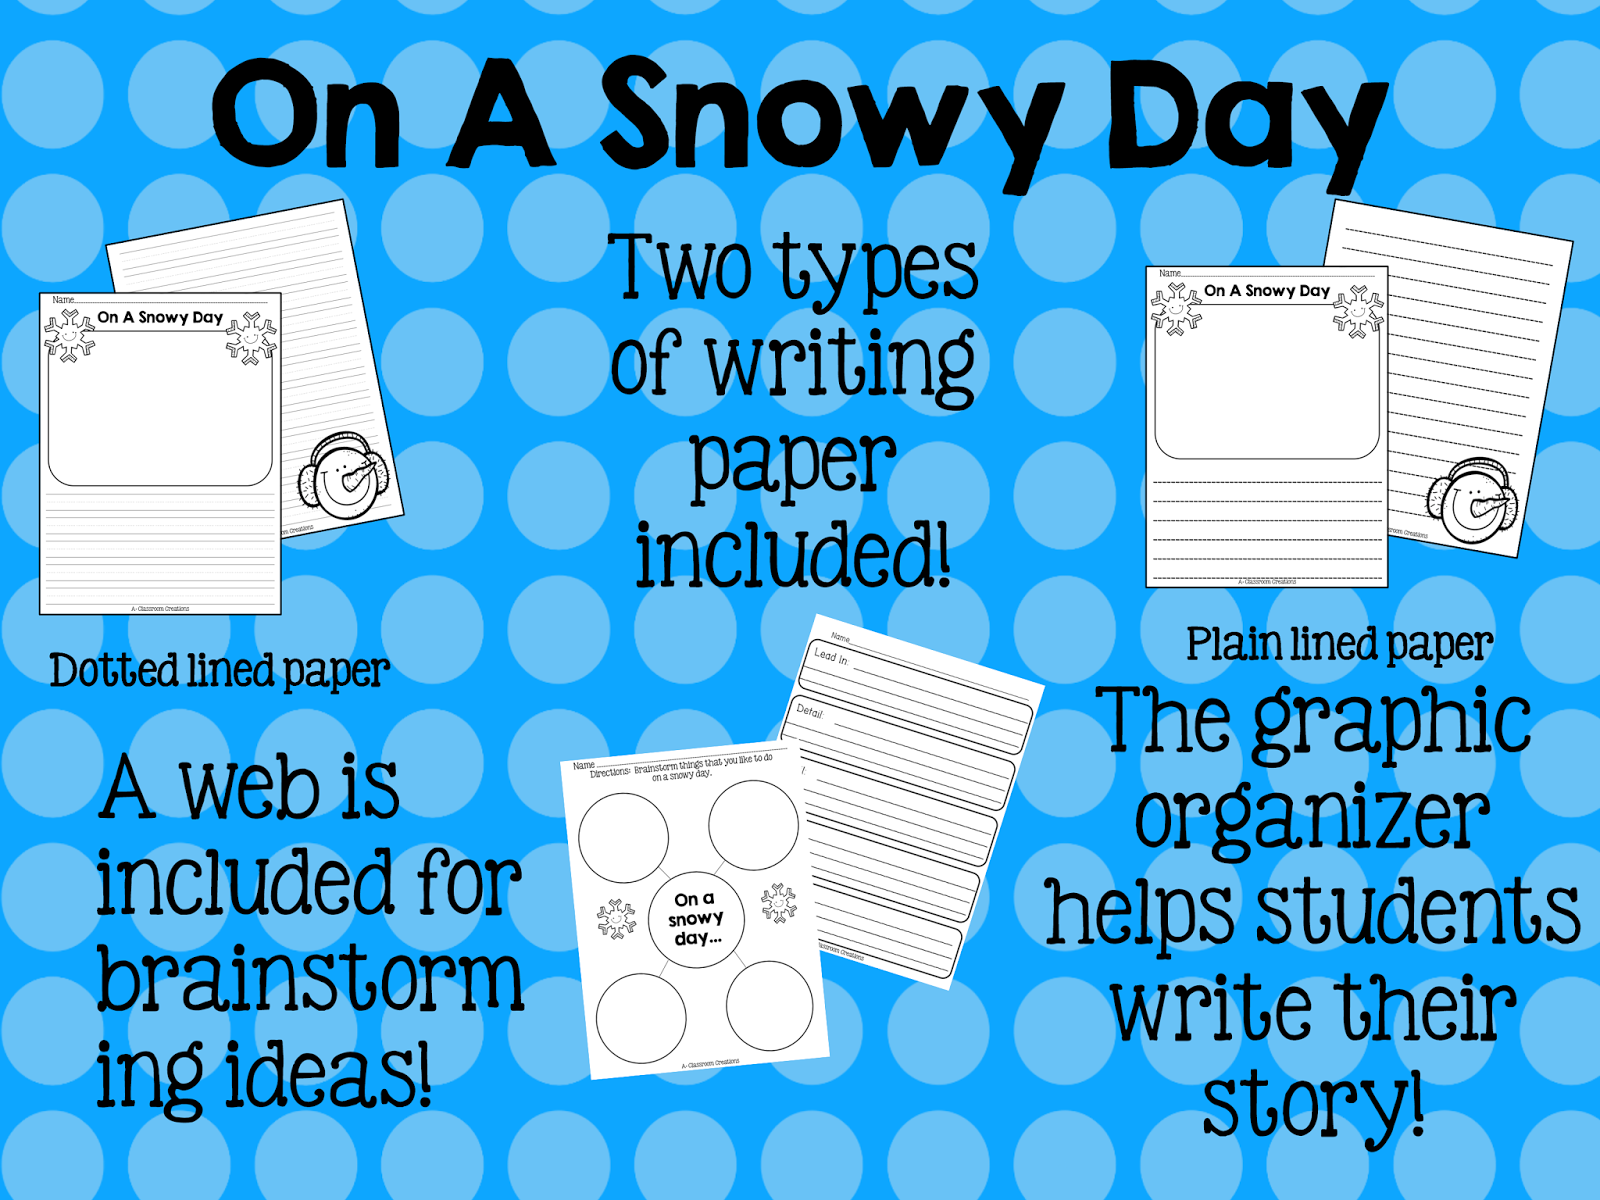 http://www.teacherspayteachers.com/Product/On-A-Snowy-Day-Writing-Activity-1066990